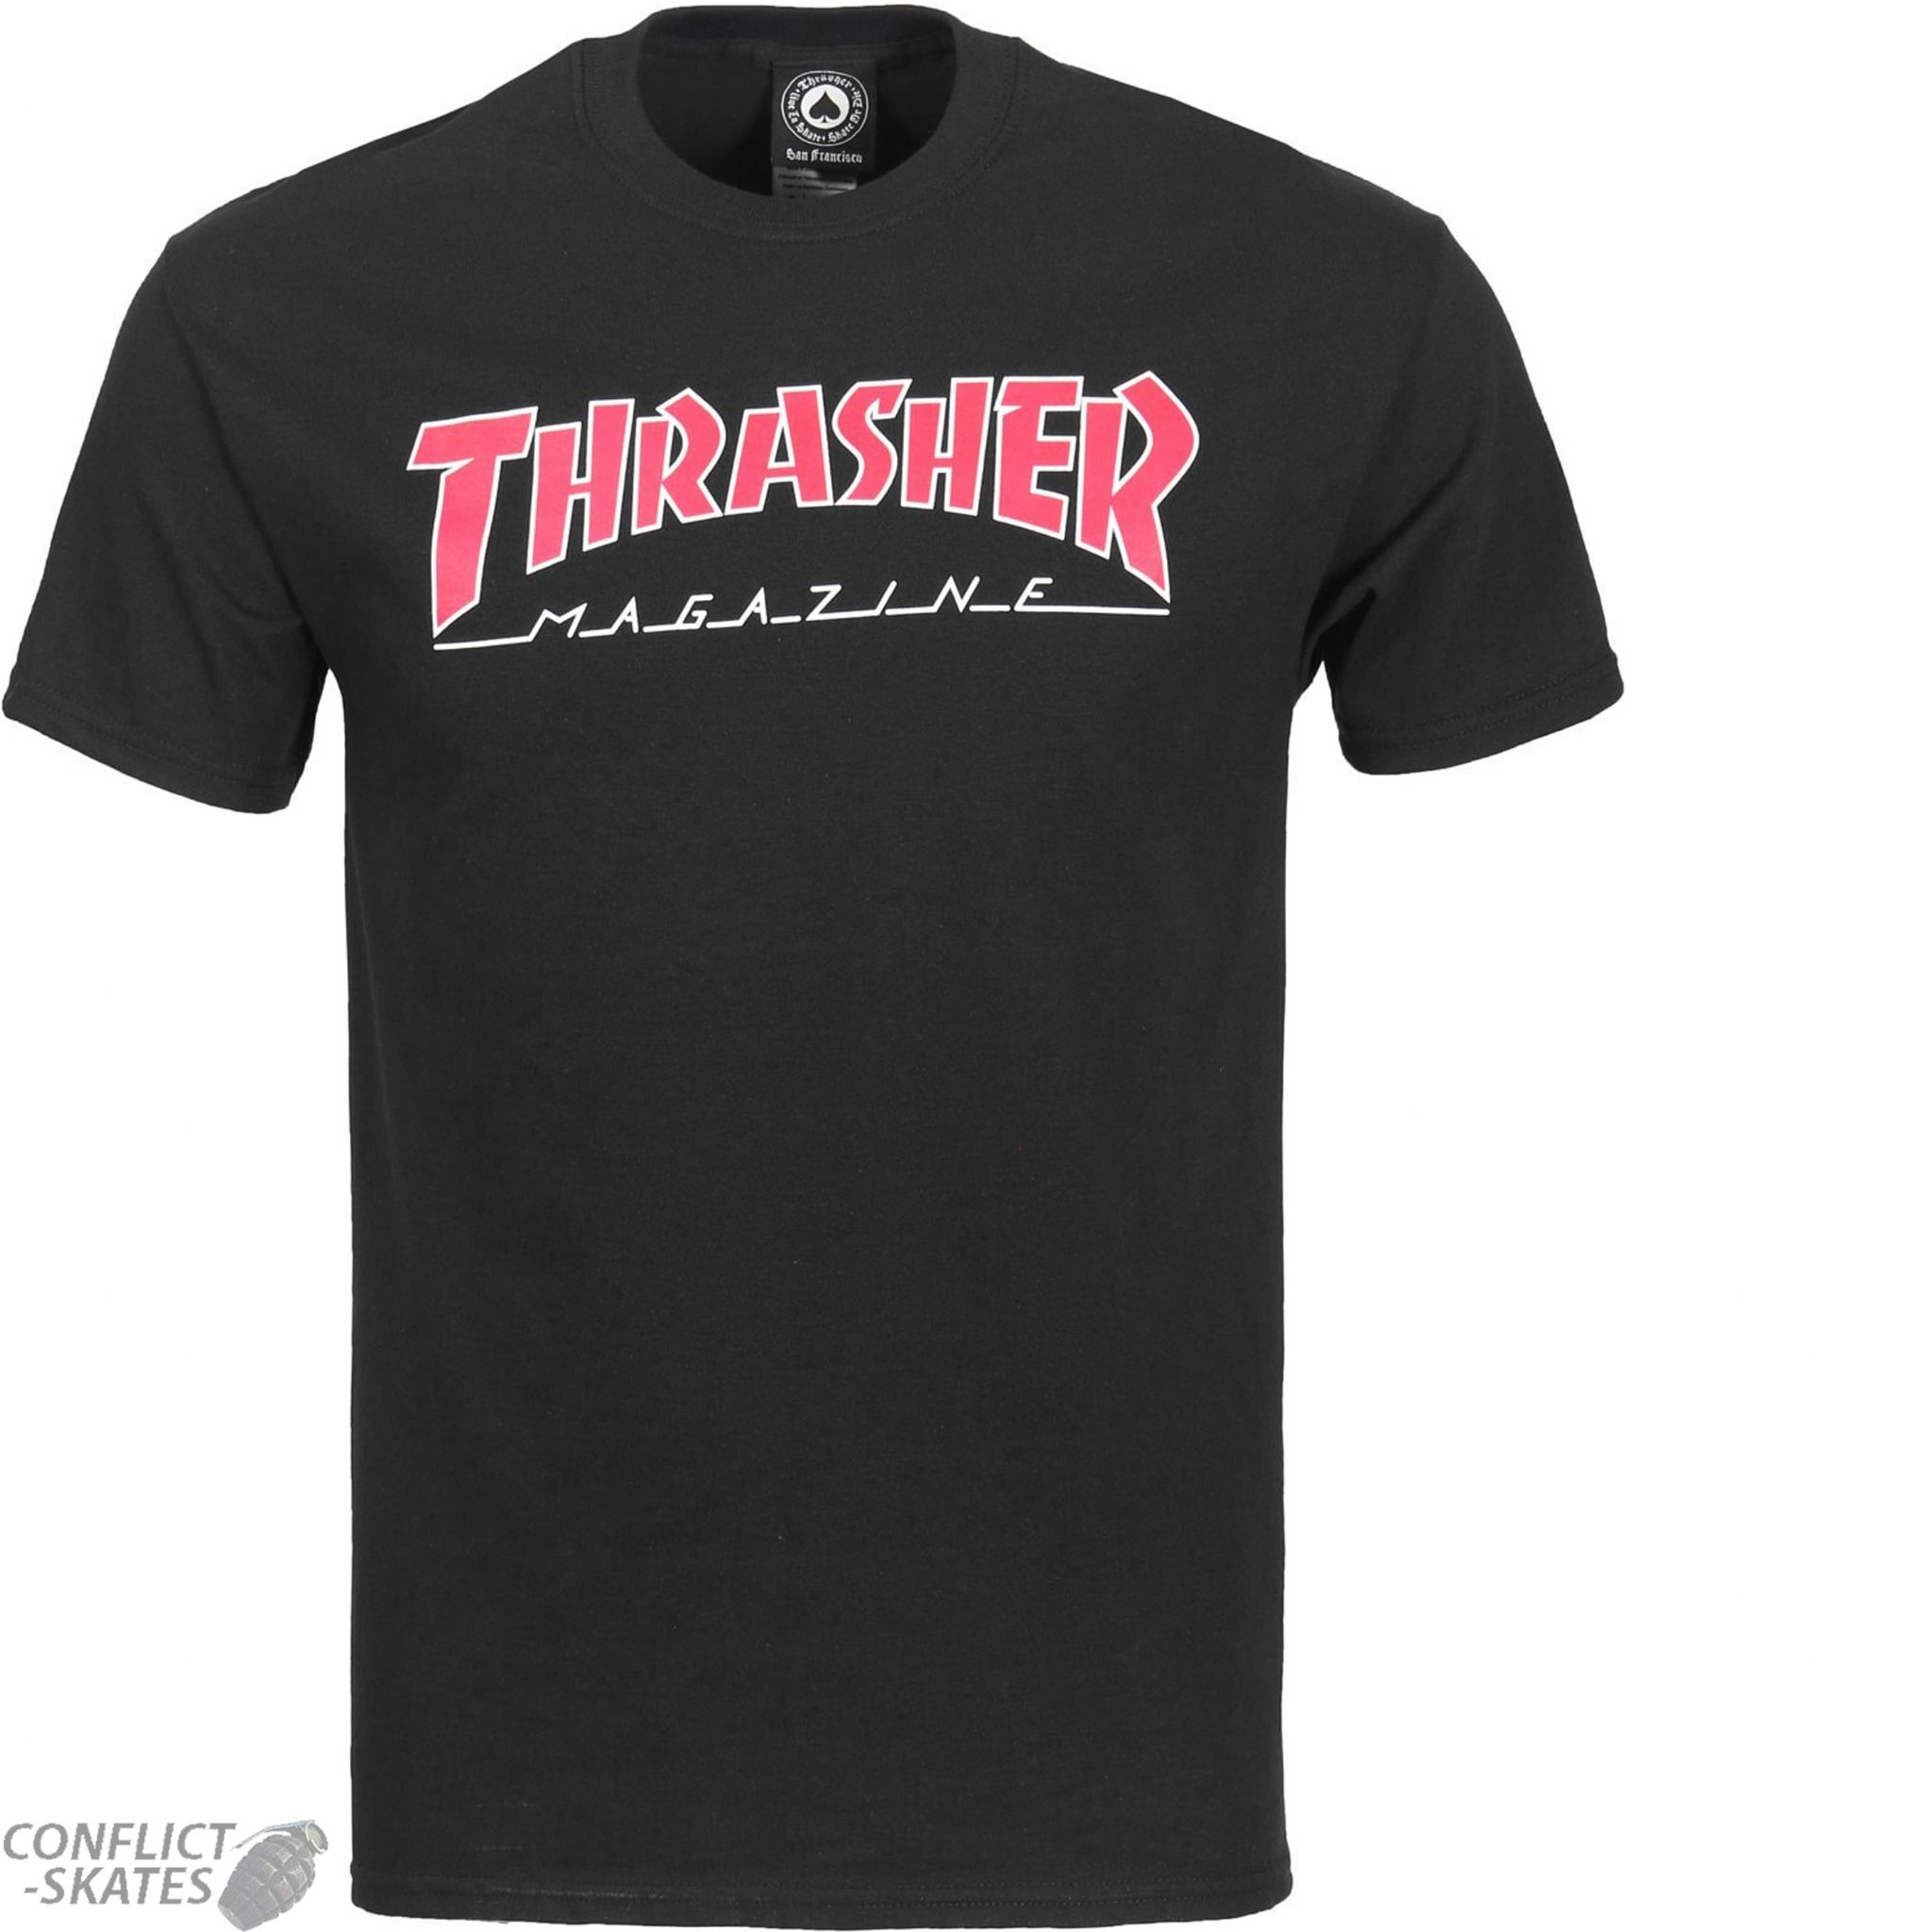 Thrasher Clothing. Shop the latest from Thrasher. Whether you want the staple Thrasher skate mag hoodie, the newest thrasher hats, or the iconic Thrasher beanies, you'll be ready to skate and destroy.